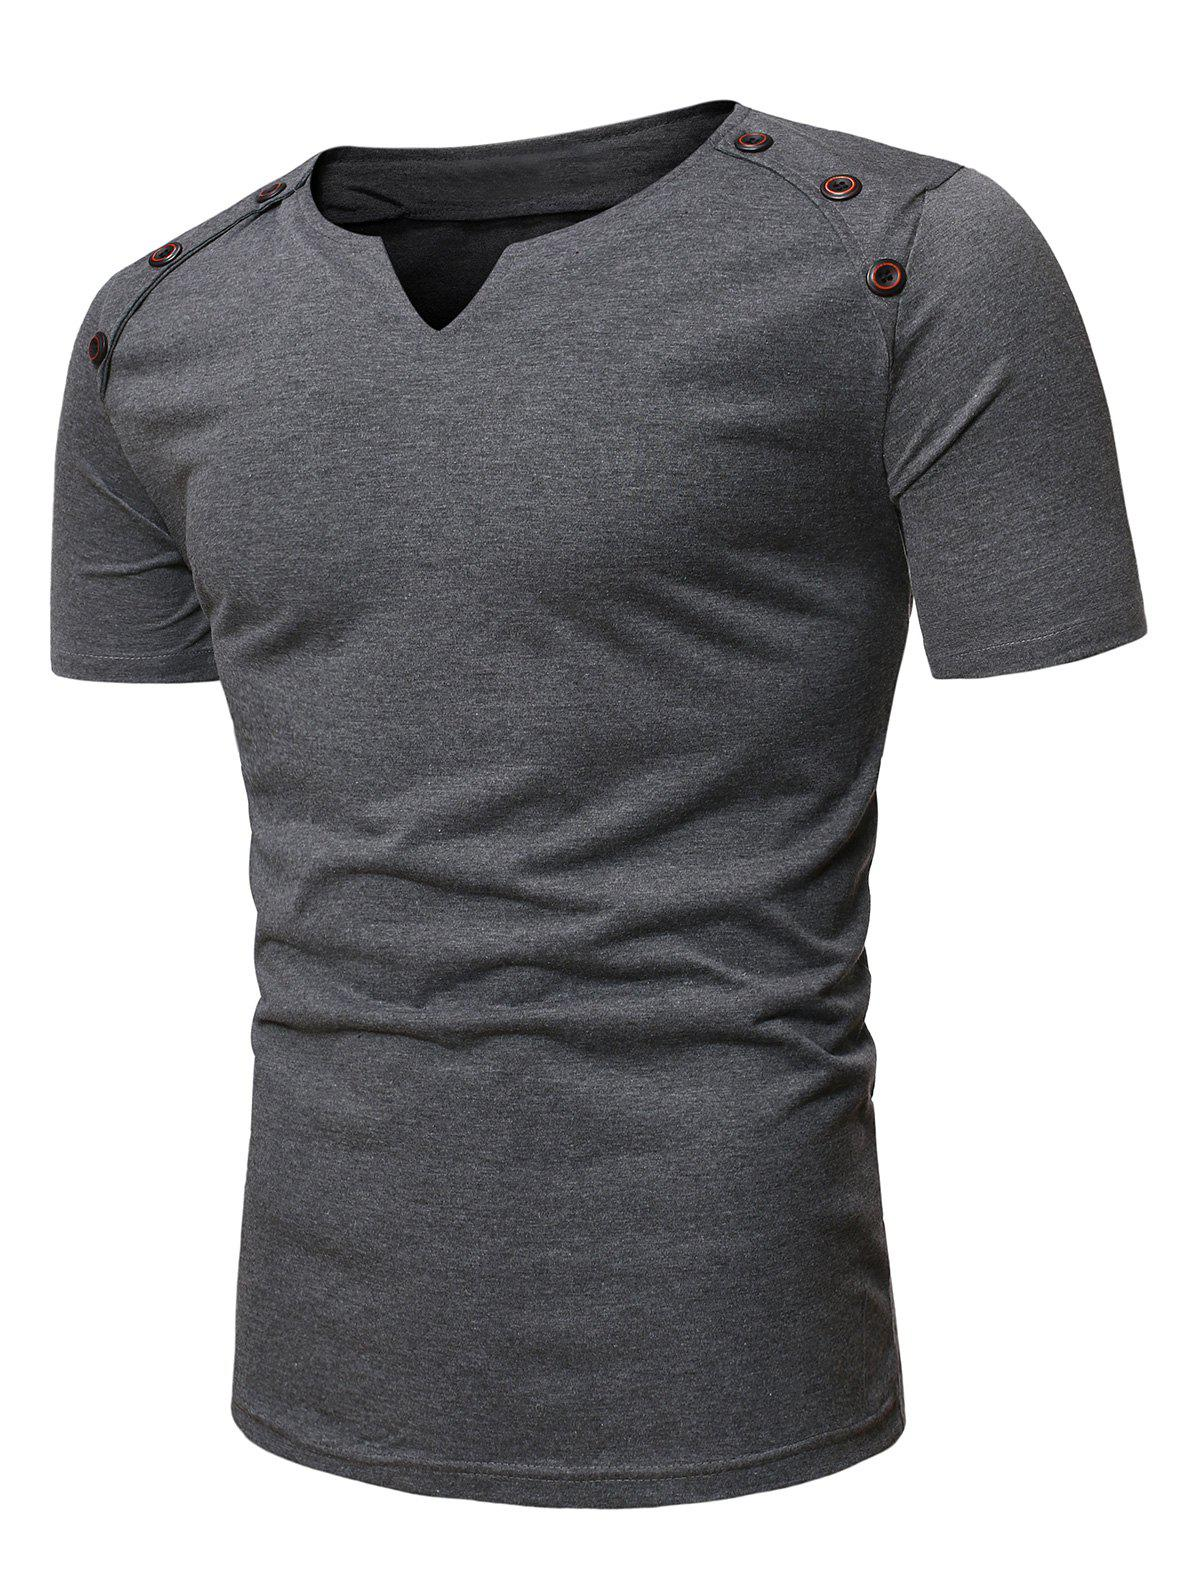 Best Short Sleeves Marled Tee with Buttons